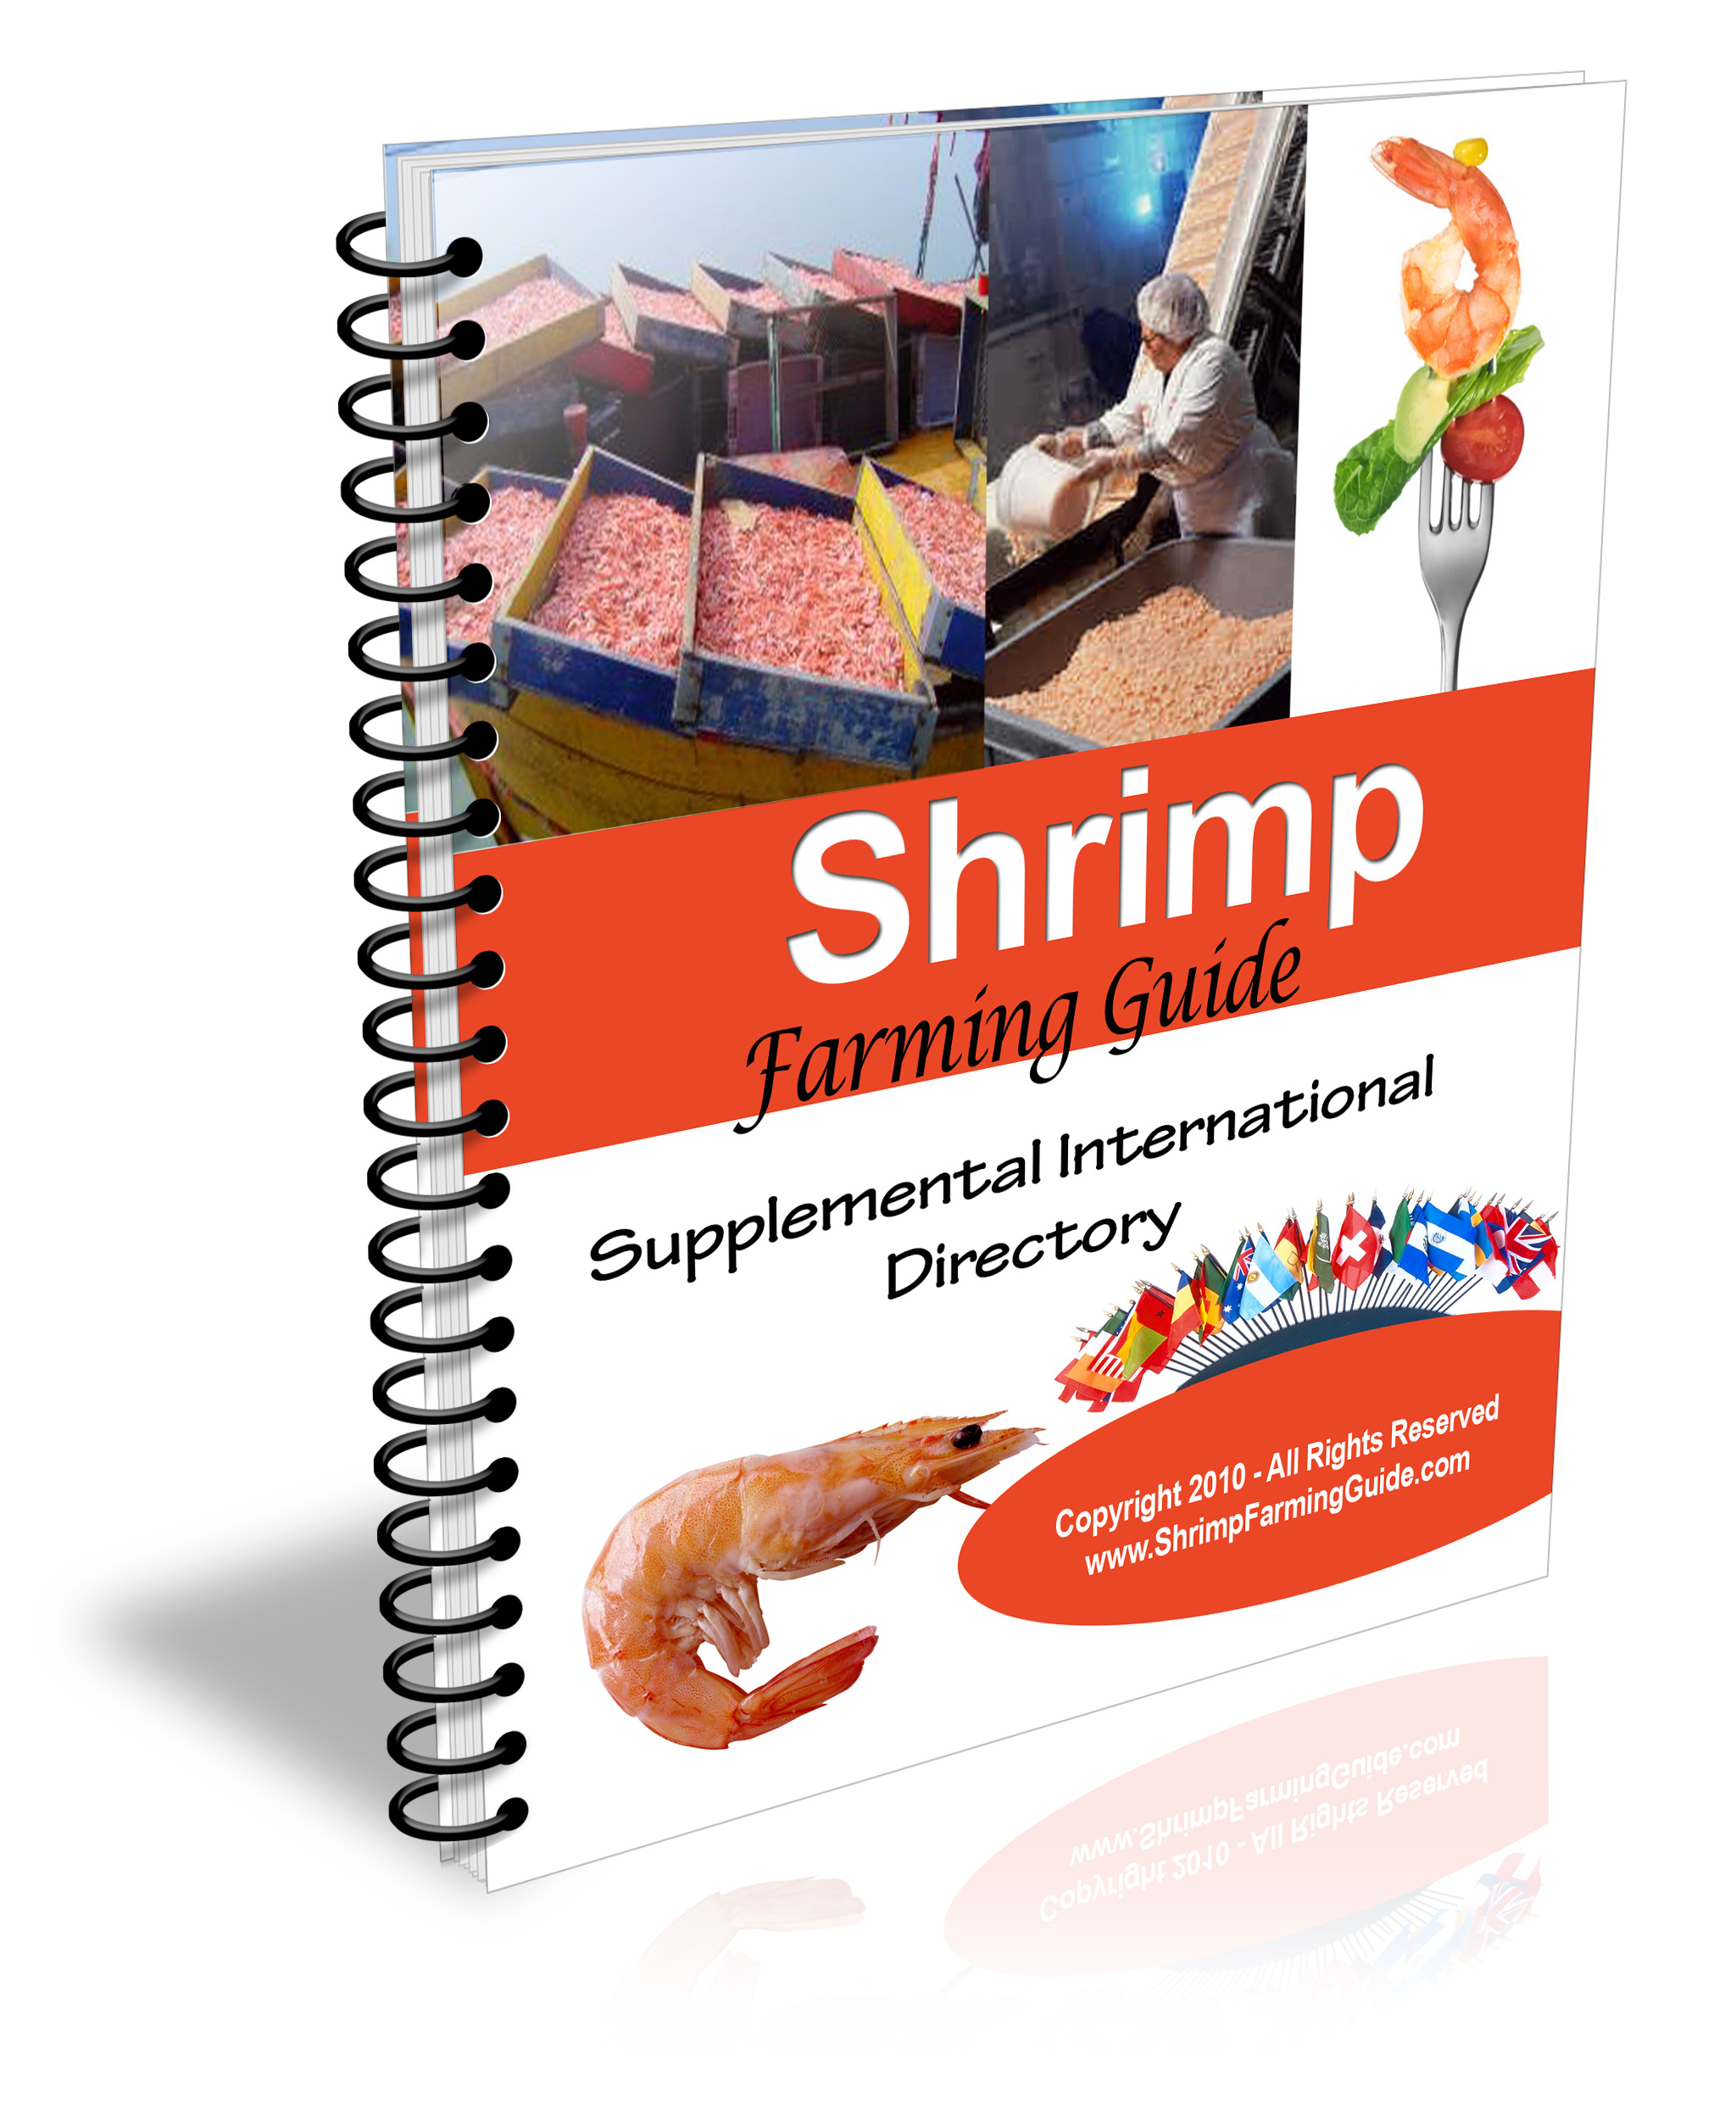 This thing is worth the price of the Entire Shrimp Farming Guide Alone!  Pure Gold!